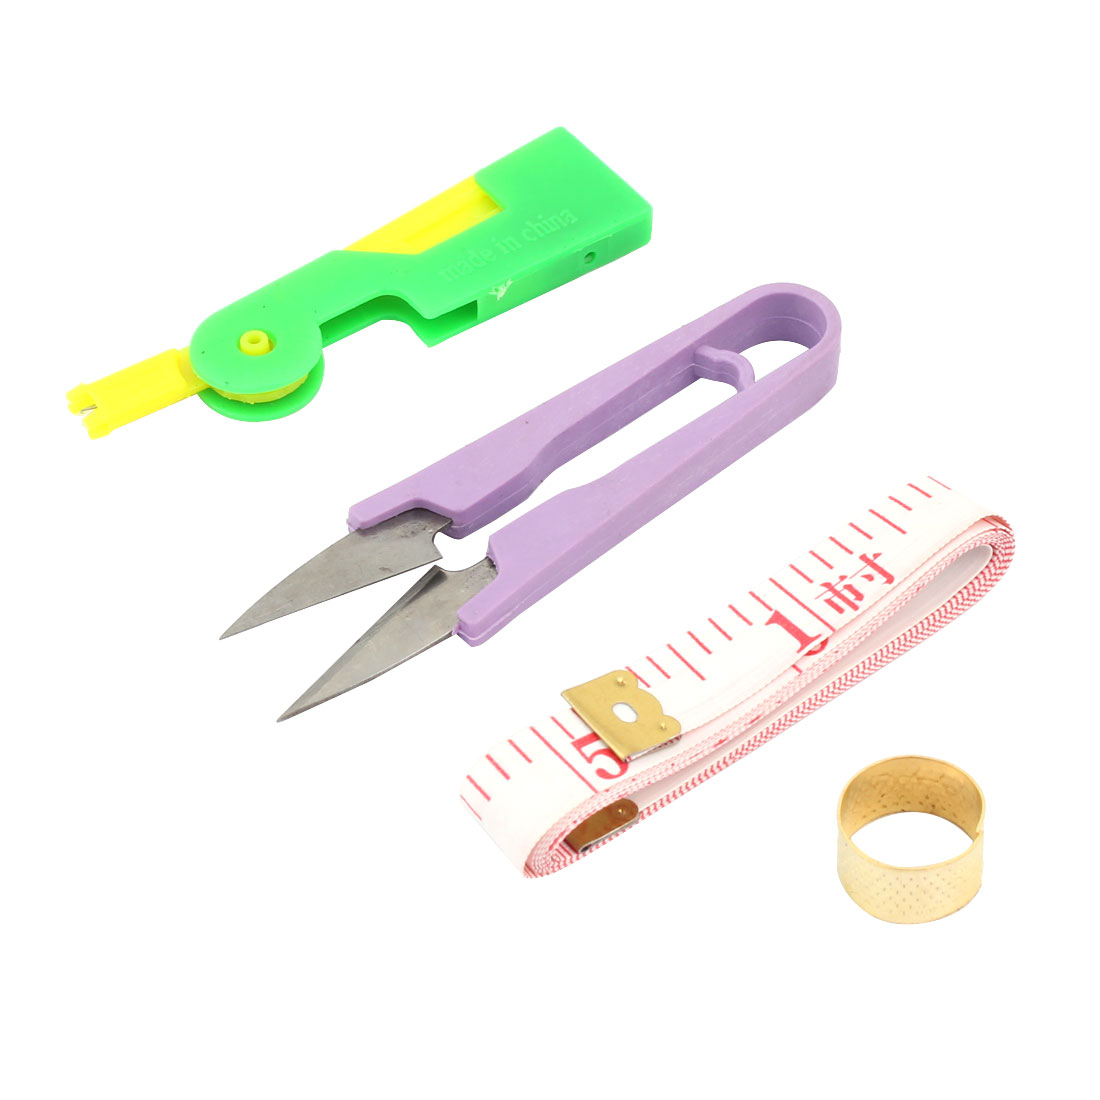 Ring Thimble Needle Threader Yarn Spring Scissors Sewing Tape Measure 4 in 1